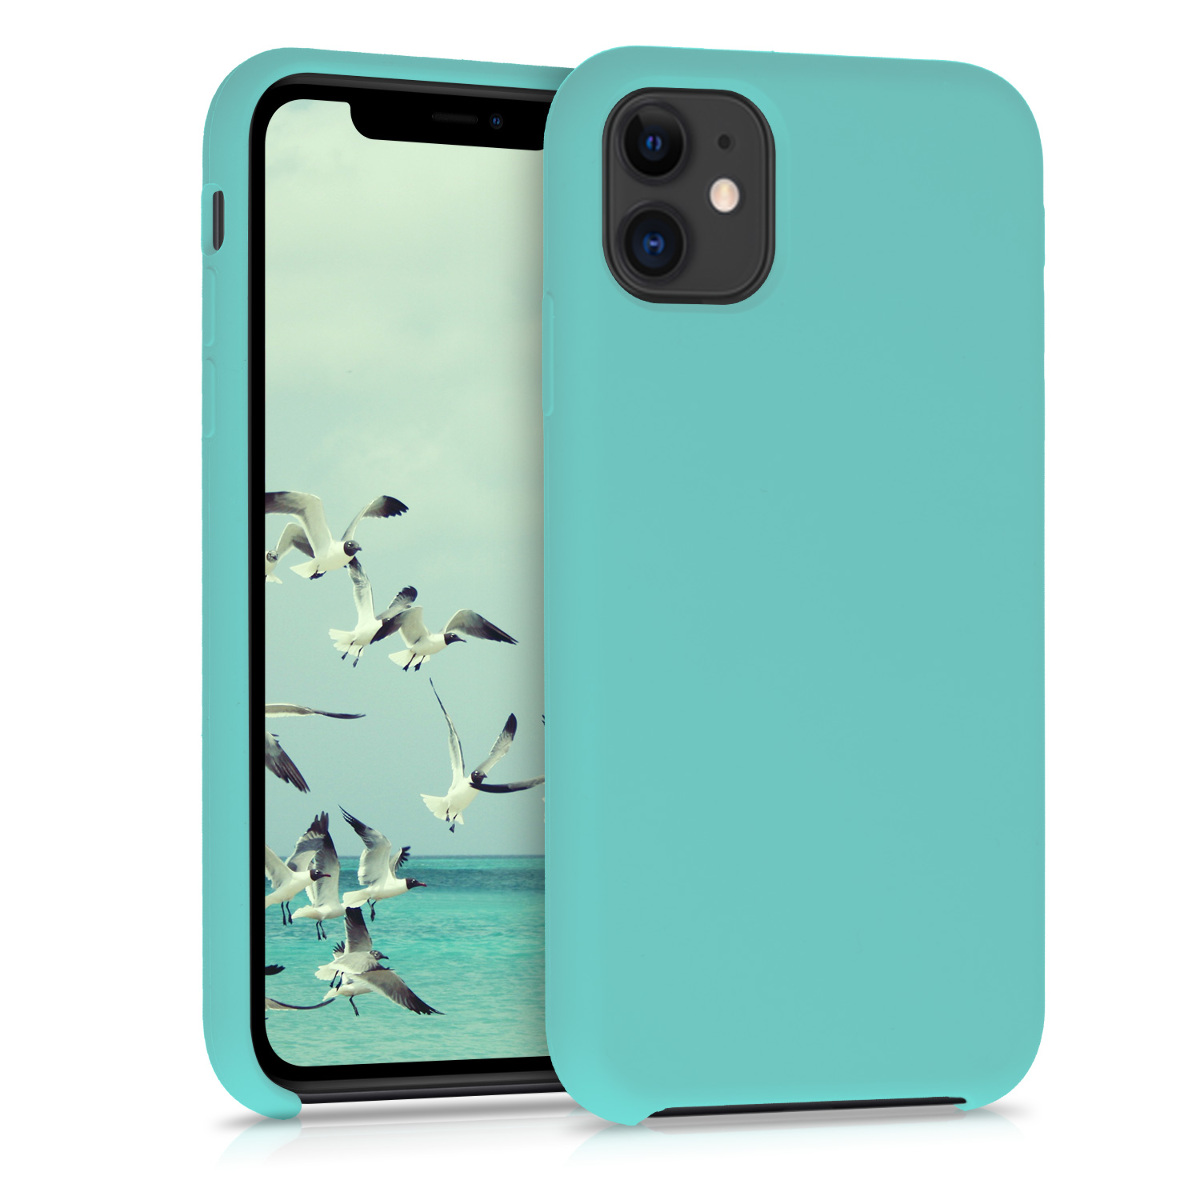 KW Θήκη Σιλικόνης iPhone 11 - Soft Flexible Rubber Protective Cover - Mint Matte (49724.71)